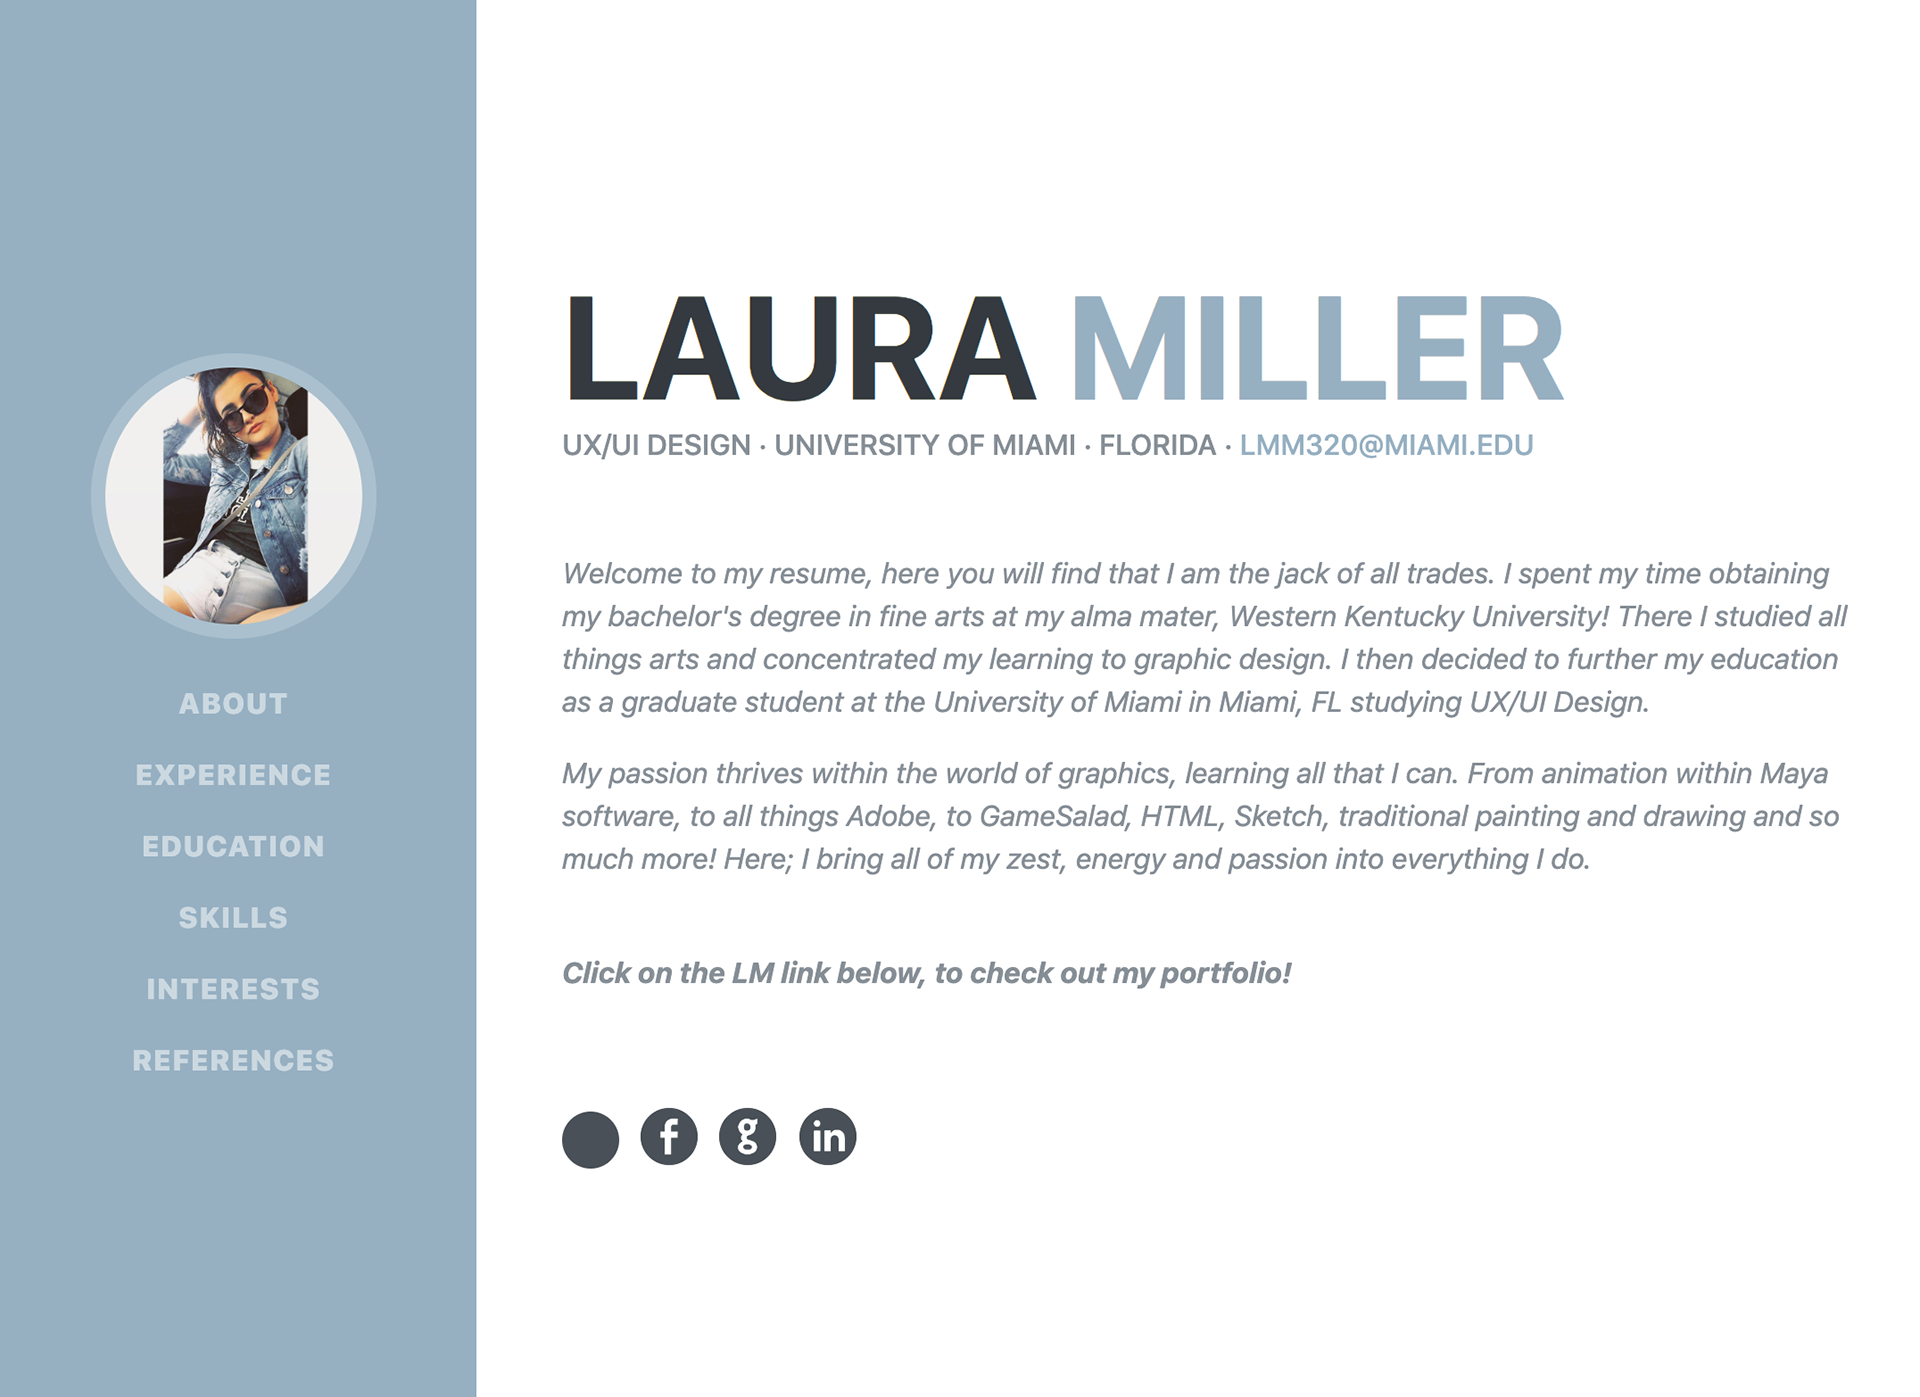 Laura Miller Web Design